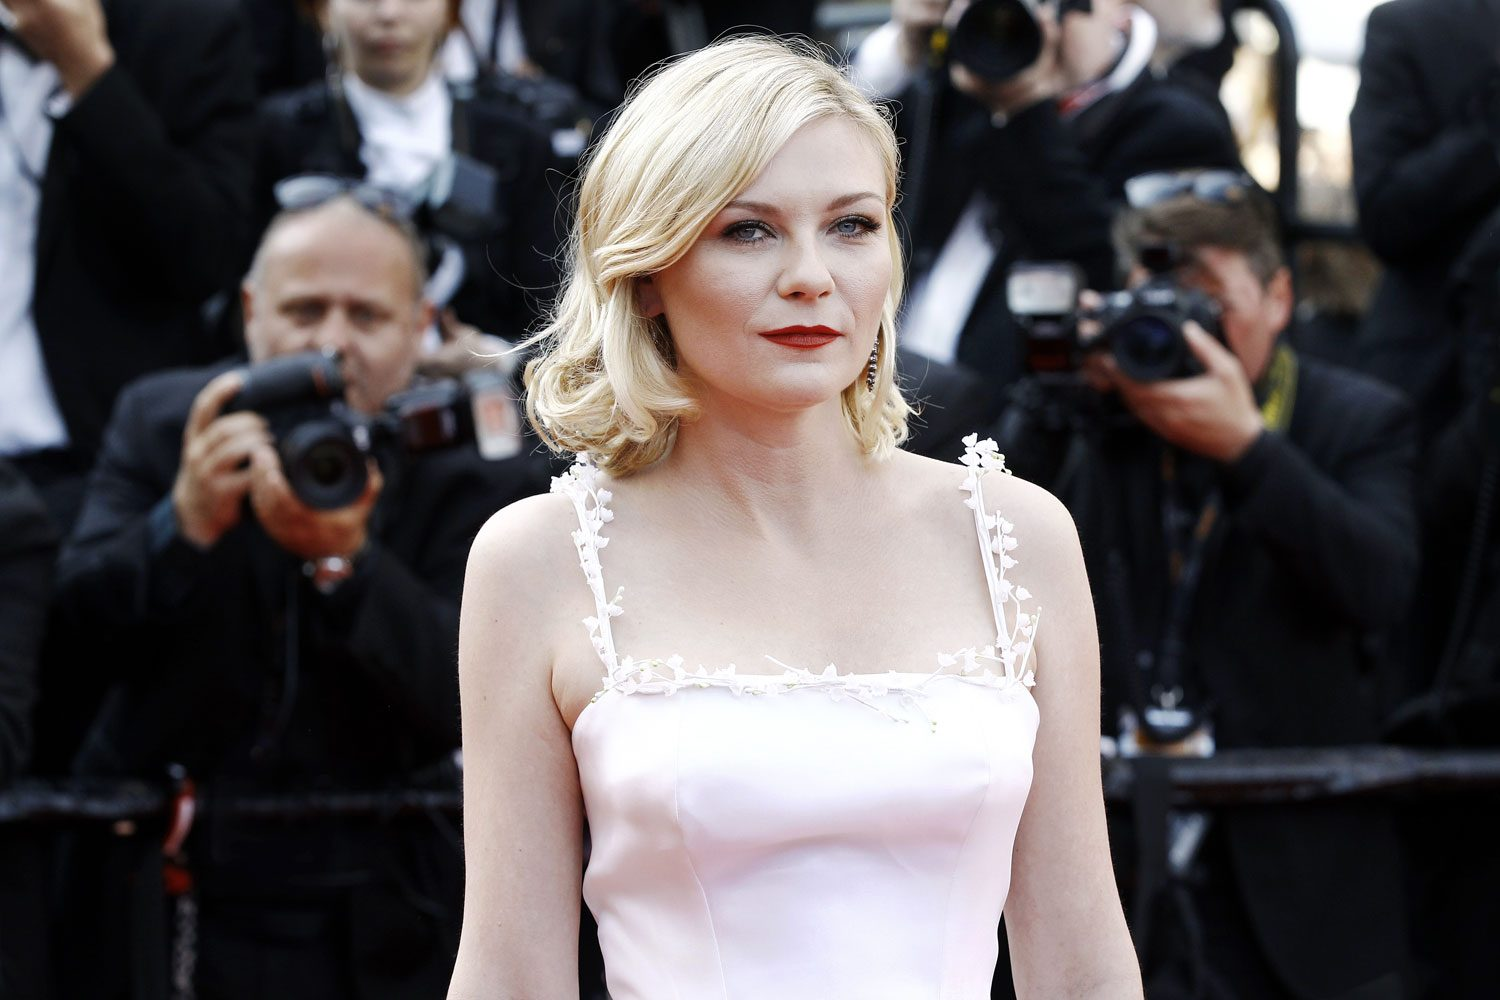 Kirsten Dunst Hot & Sexy Topless Images, Videos Gallery